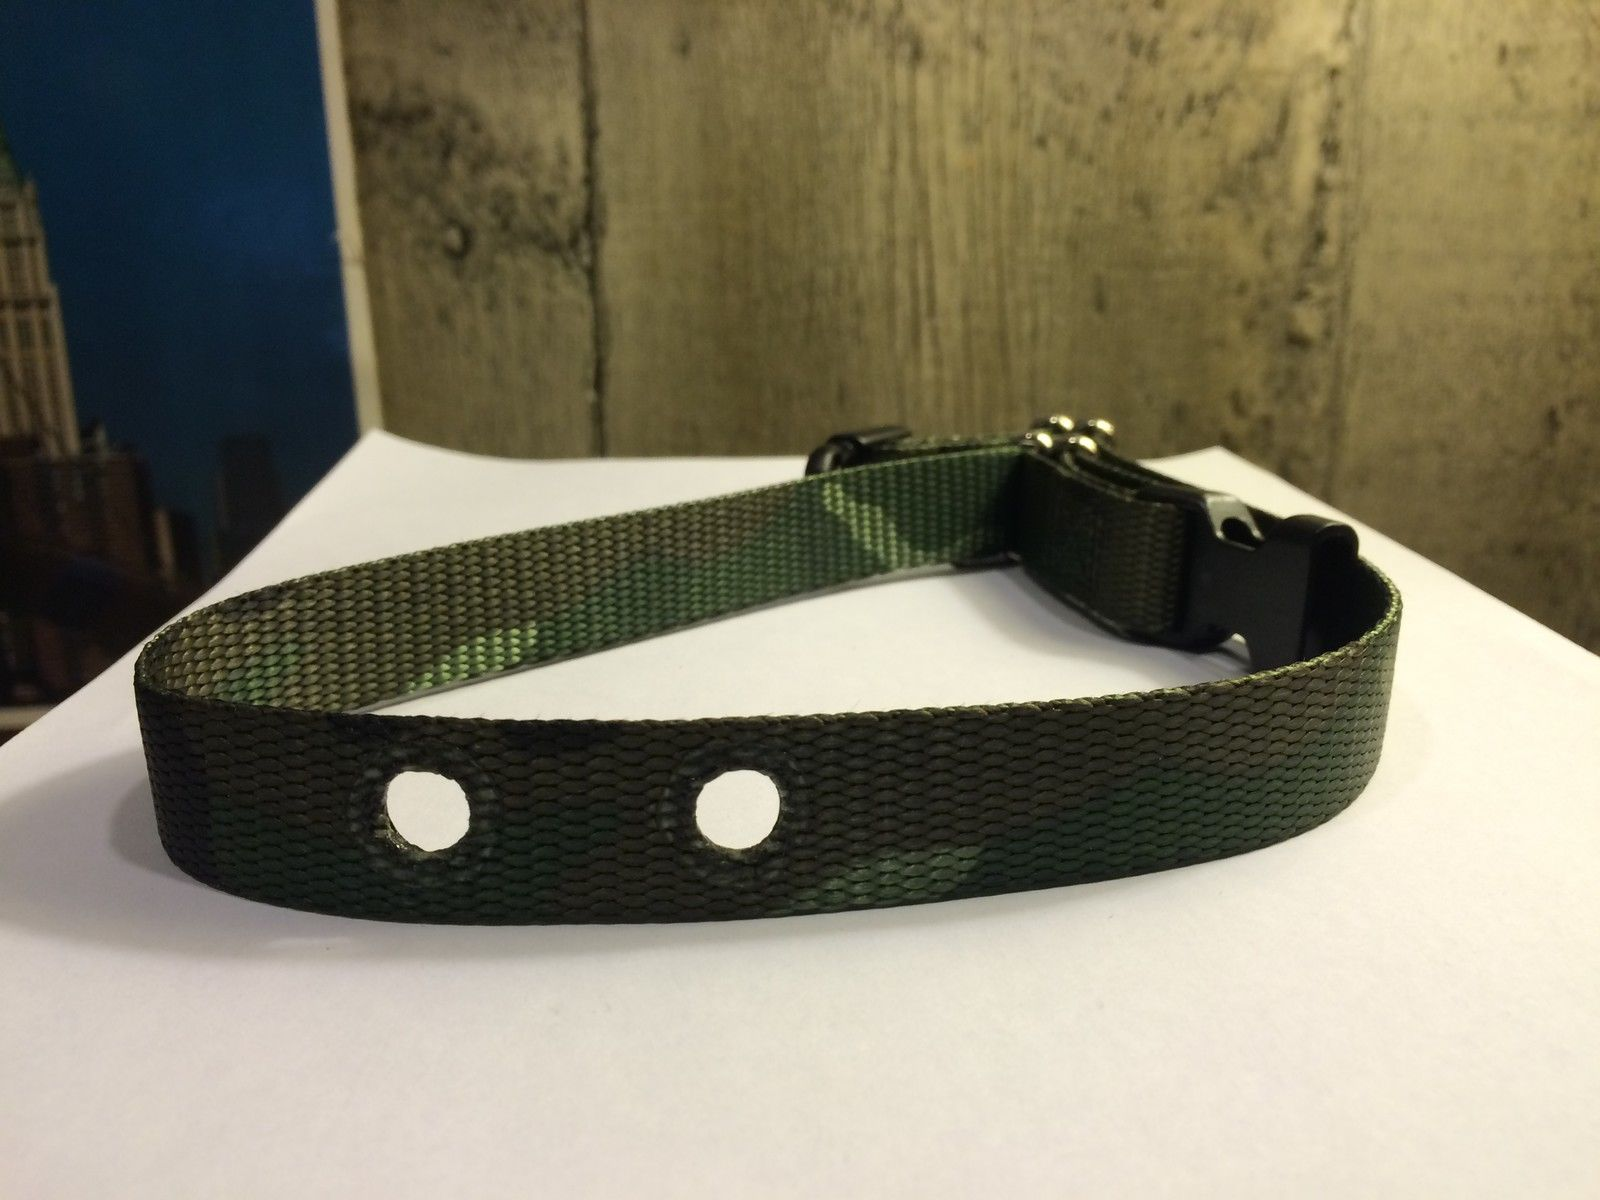 PETSAFE SPORTDOG GREEN CAMO REPLACEMENT COLLAR 2 HOLED 3/4' WIDE